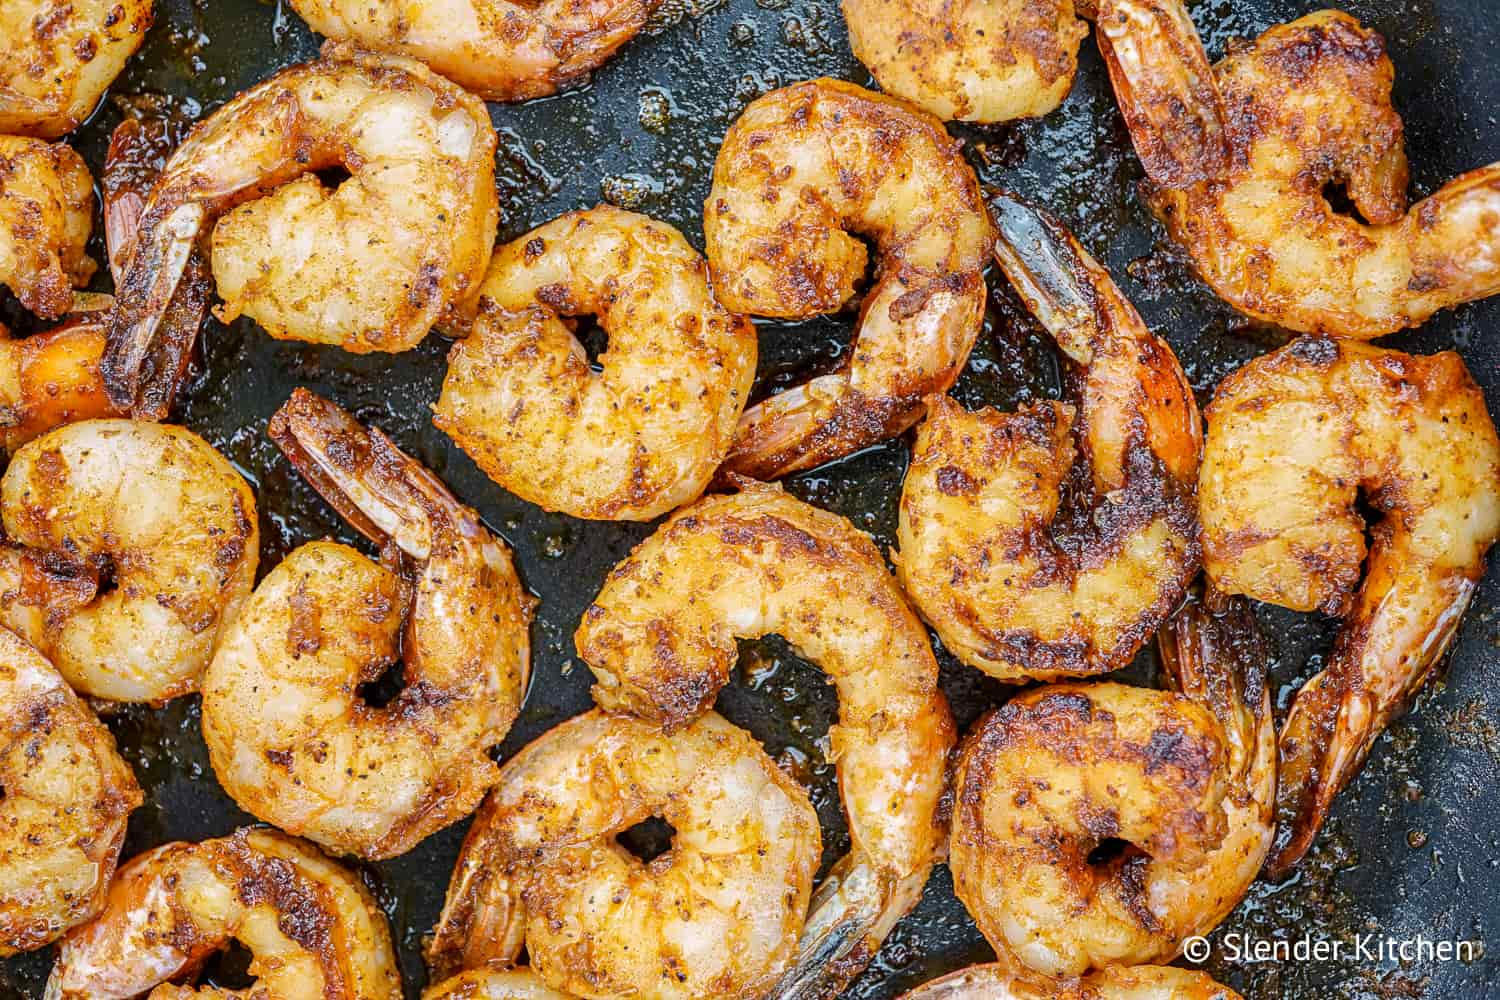 Blackened Cajun Shrimp in a pan with spices and butter.